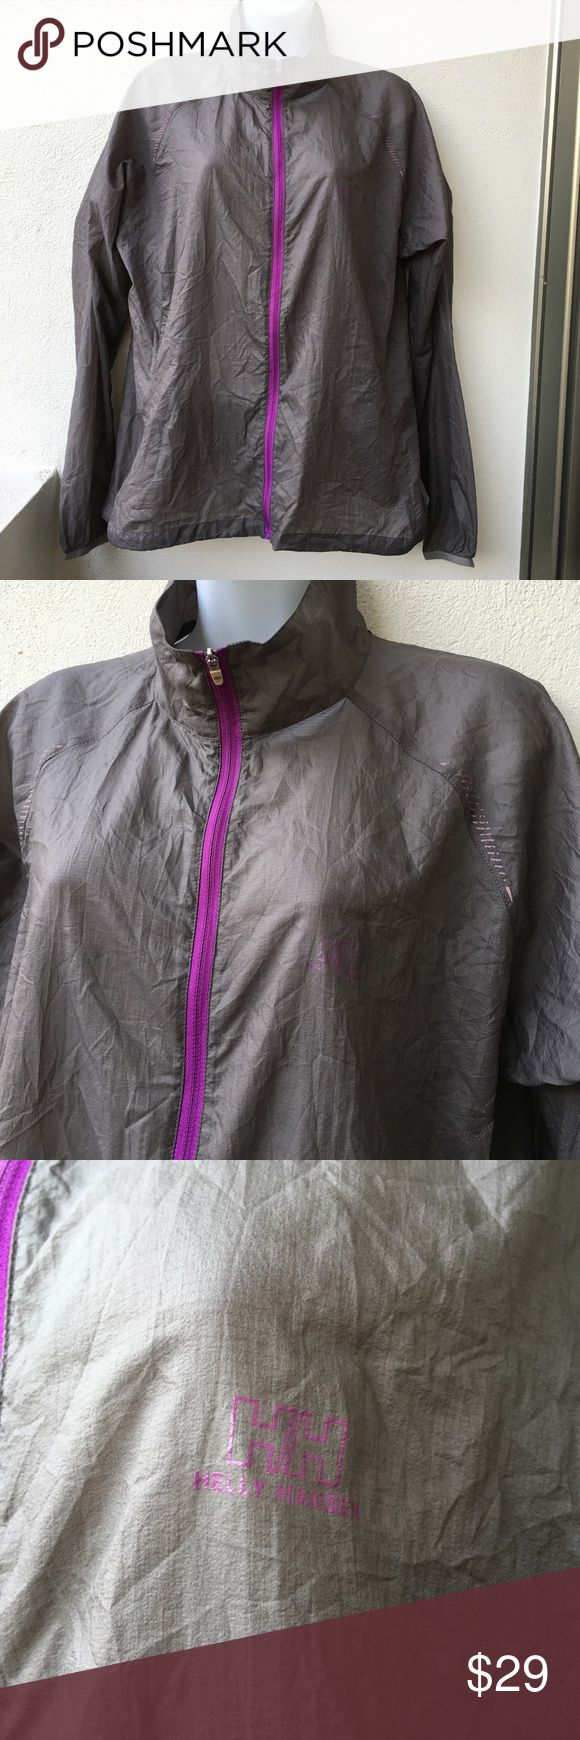 Helly Hansen Windbreaker zip up Jacket size XL Preowned authentic Helly Hansen Women's Sheer Gray Windbreaker full zip up Jacket size XL. Please look at pictures for better reference. Happy shopping! Helly Hansen Jackets & Coats